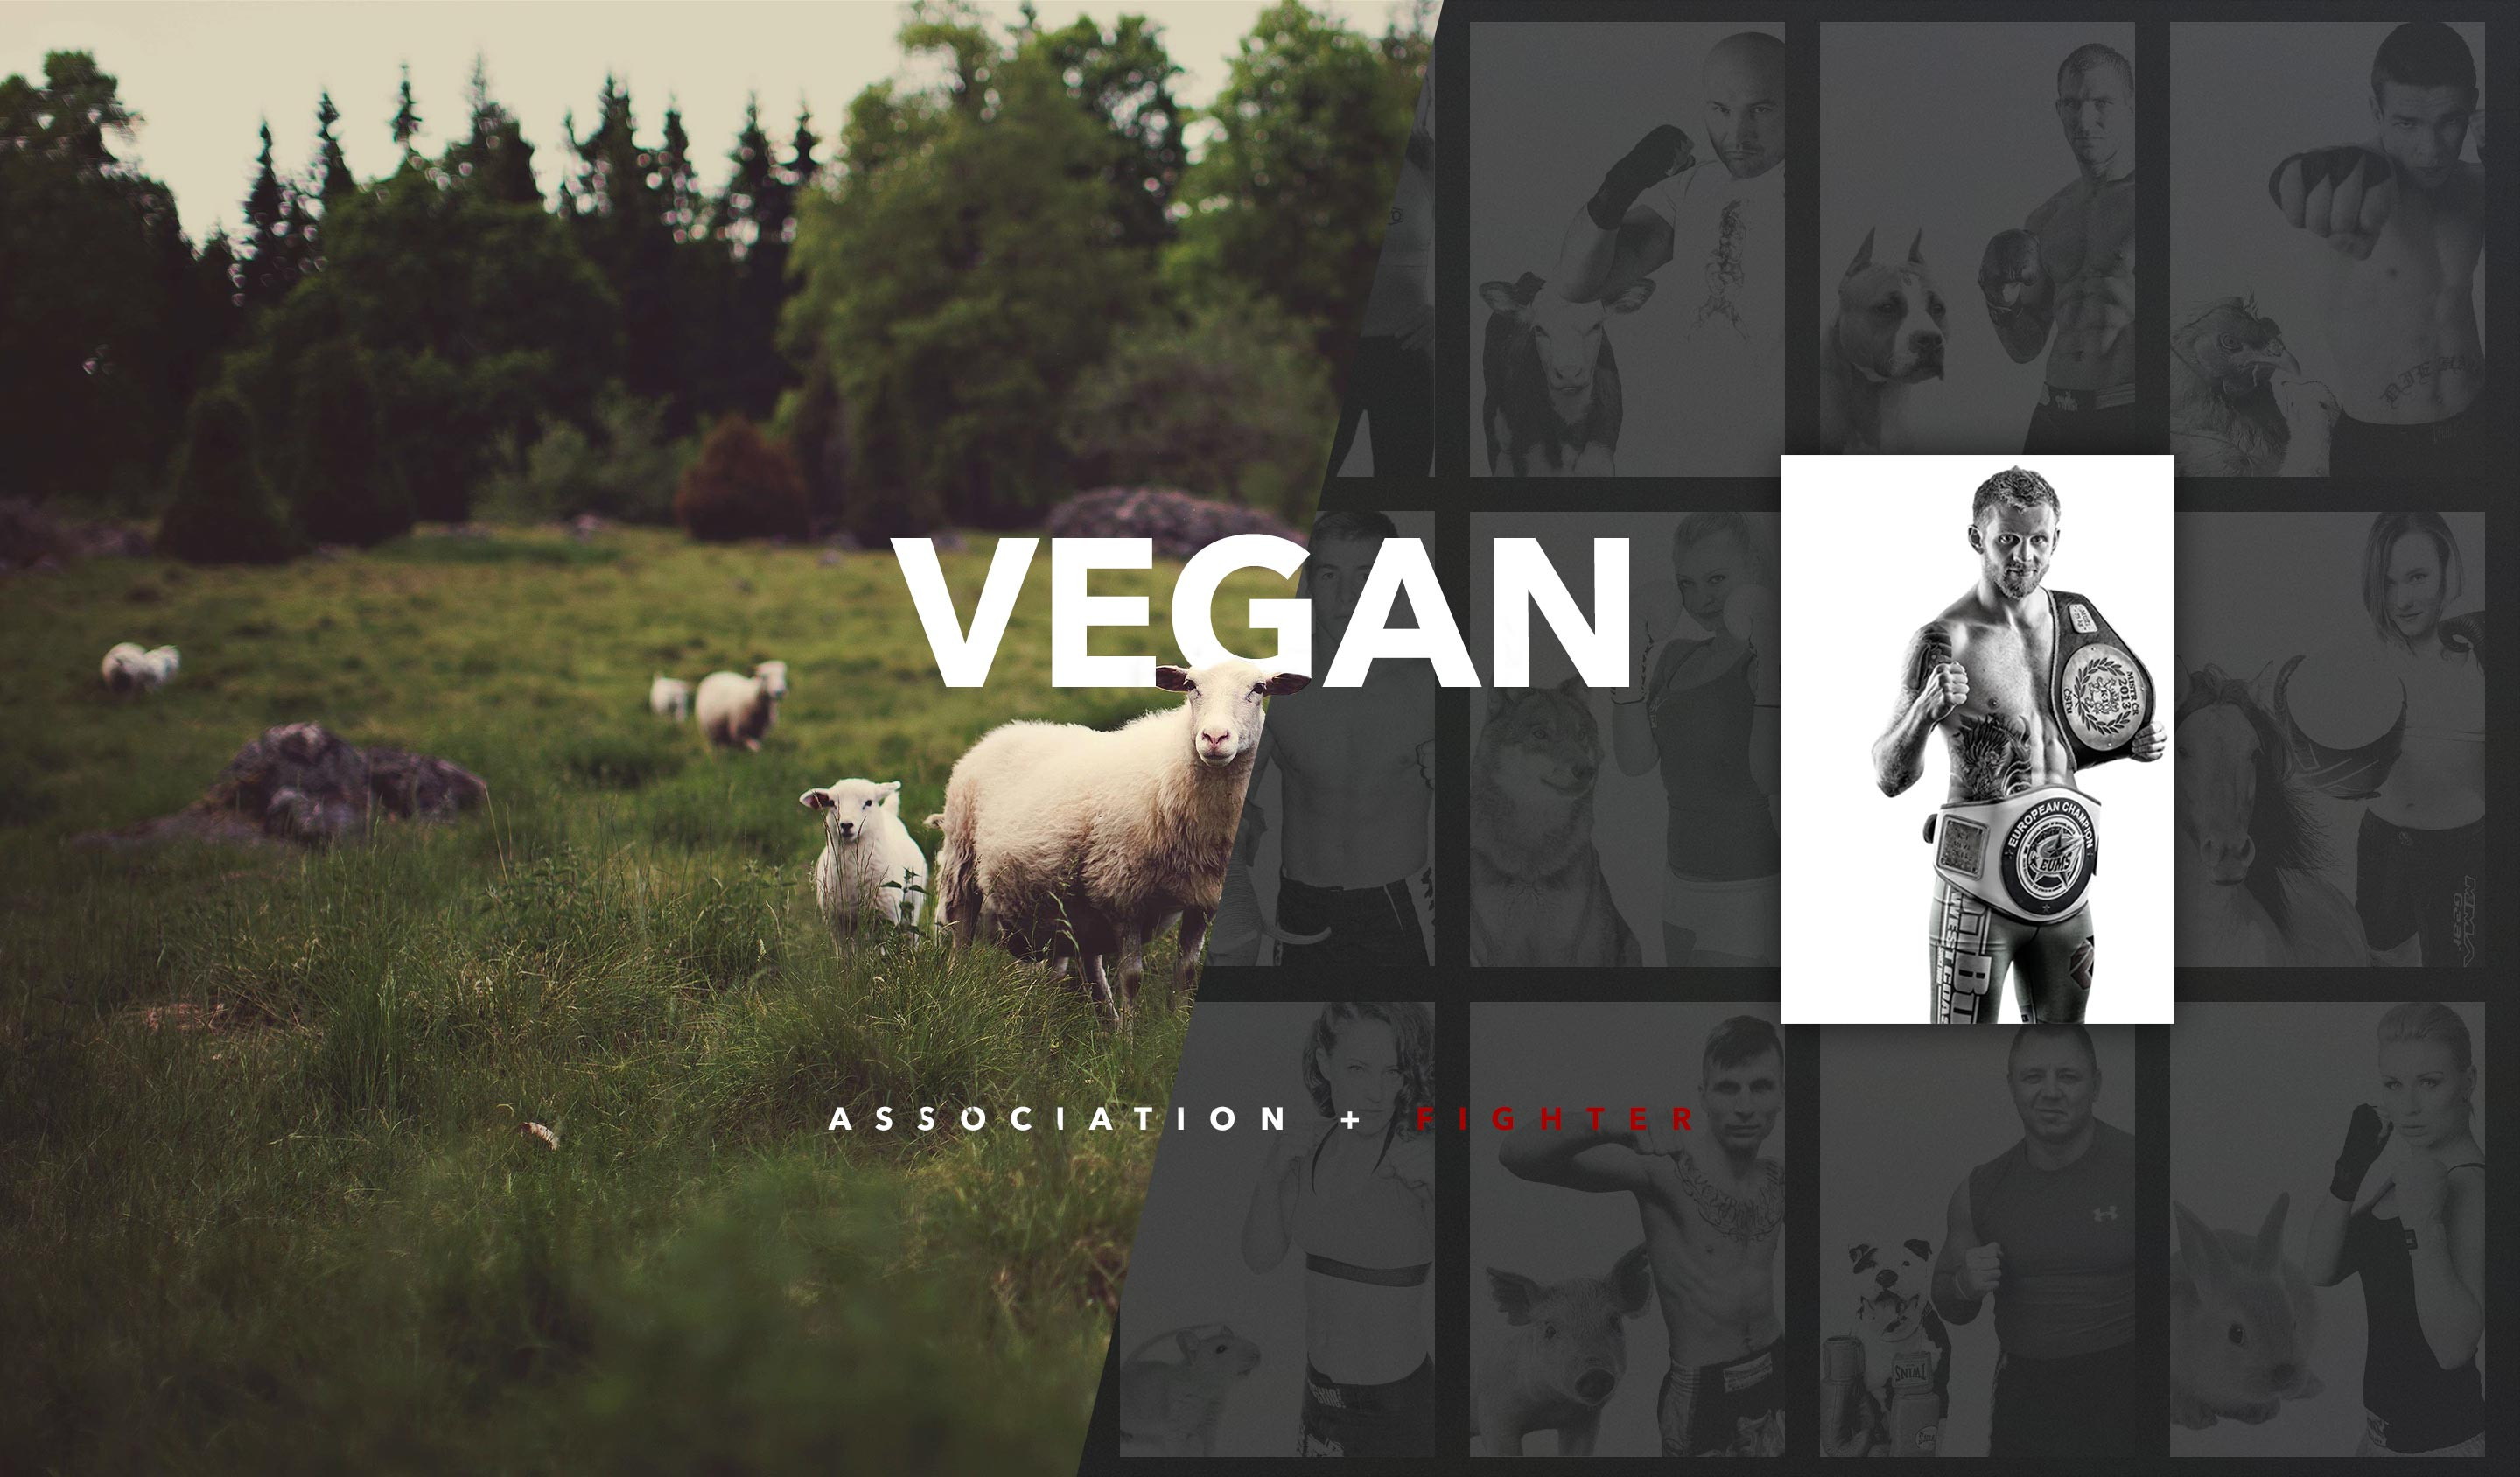 Vegan Association + Vegan Fighter